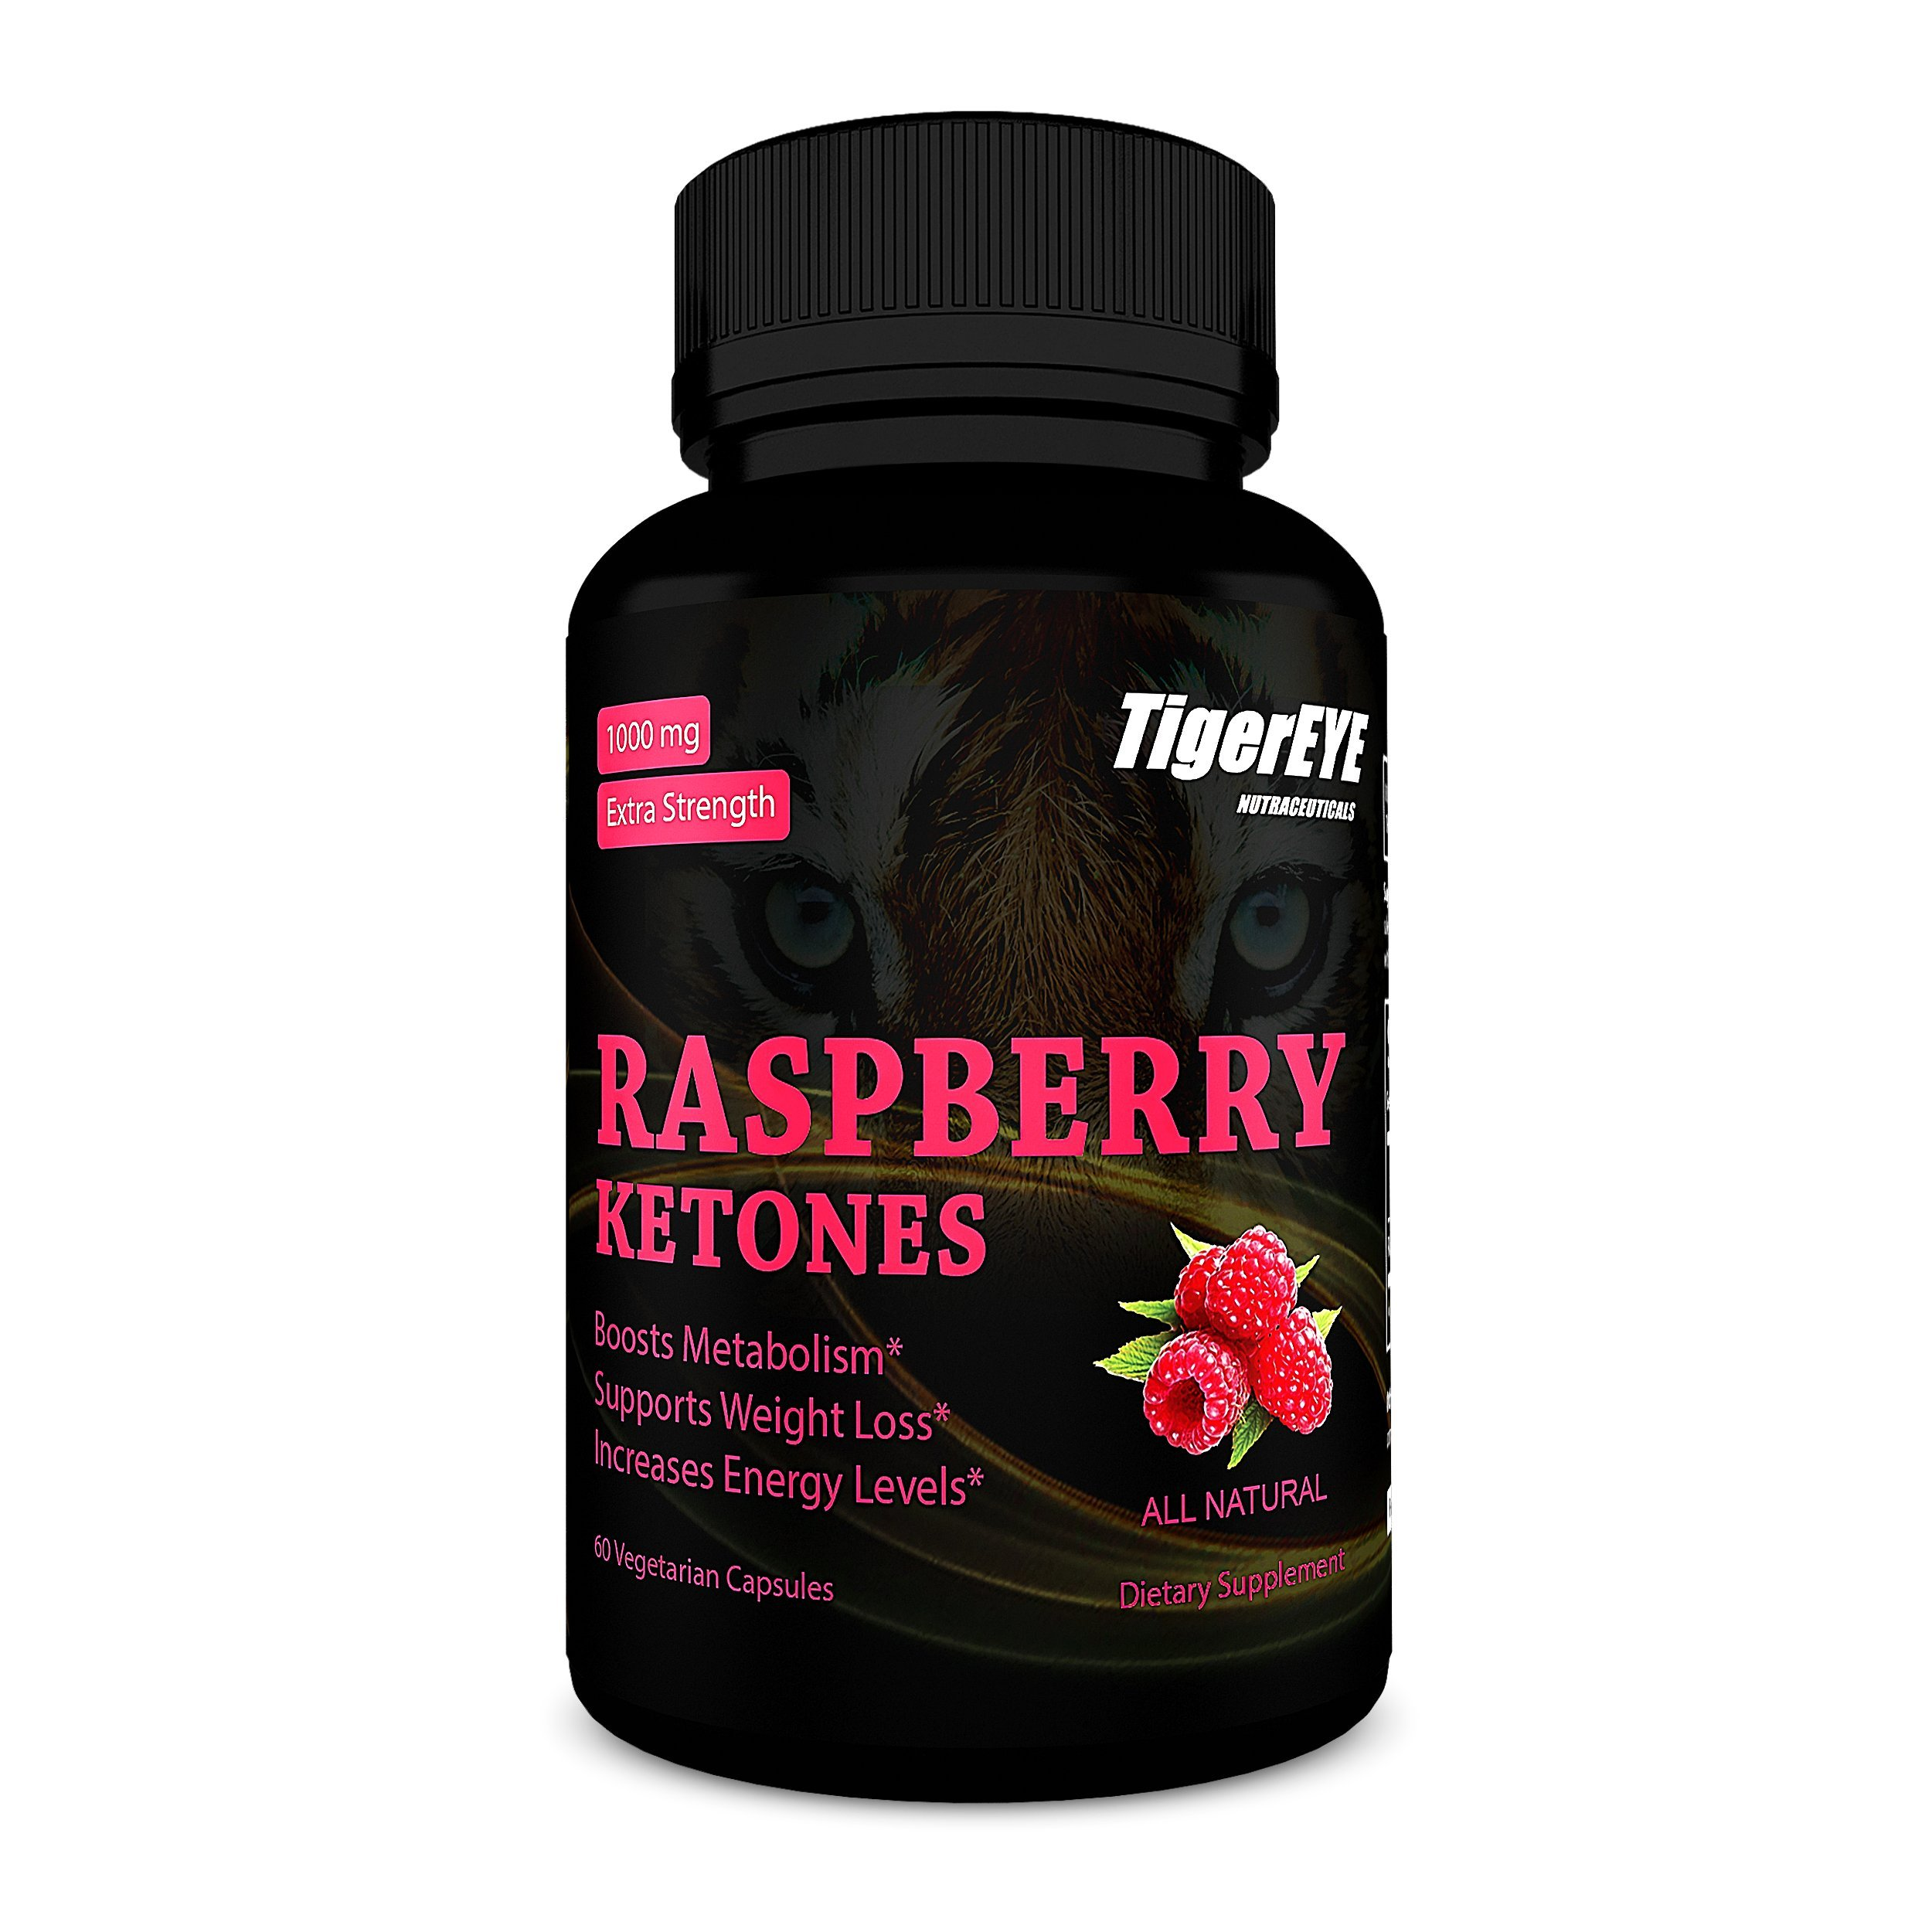 100% Pure Raspberry Ketones Extract NEW Extra Strength Appetite Suppressant, Energy Booster, All Natural, 60 Vegetarian Capsules by Tigereye Nutraceuticals